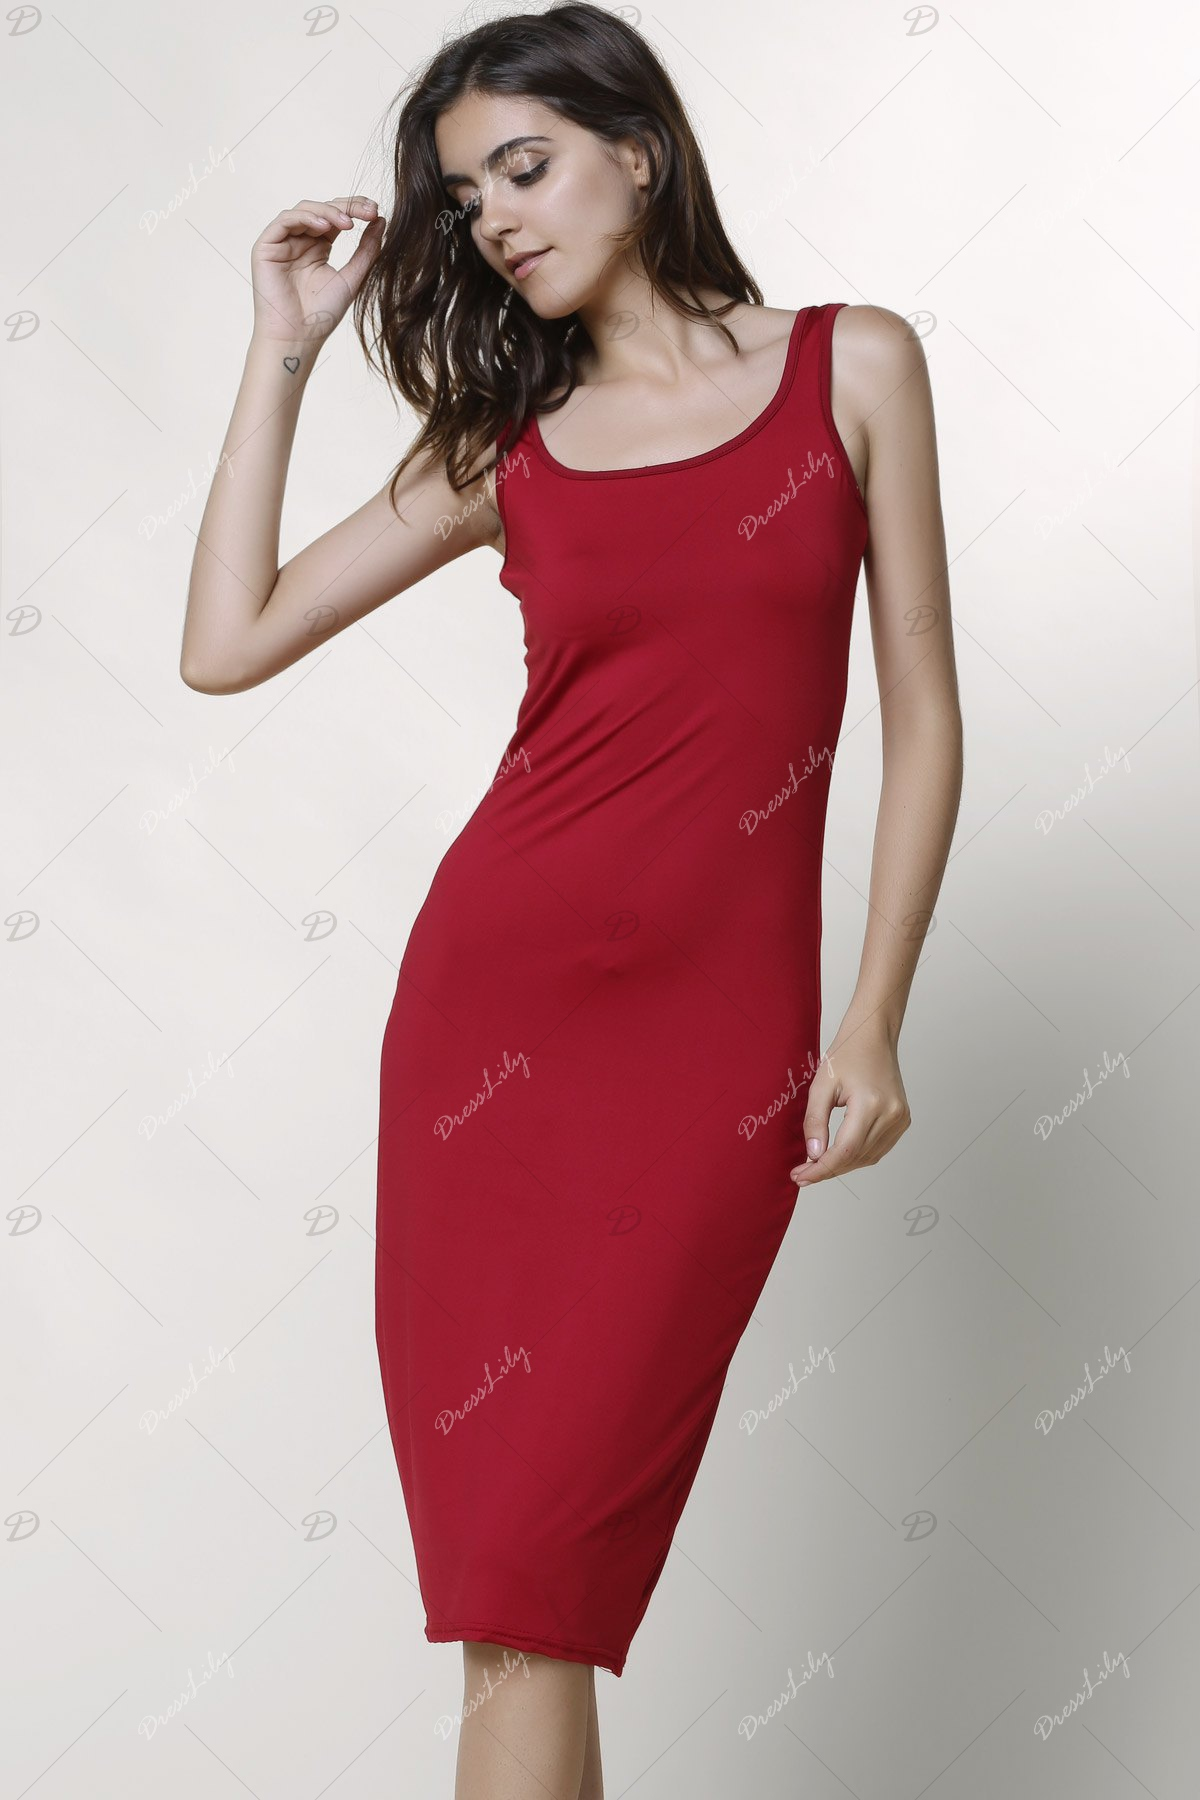 Sexy Scoop Collar Sleeveless Bodycon Solid Color Women's Dress - WINE RED L